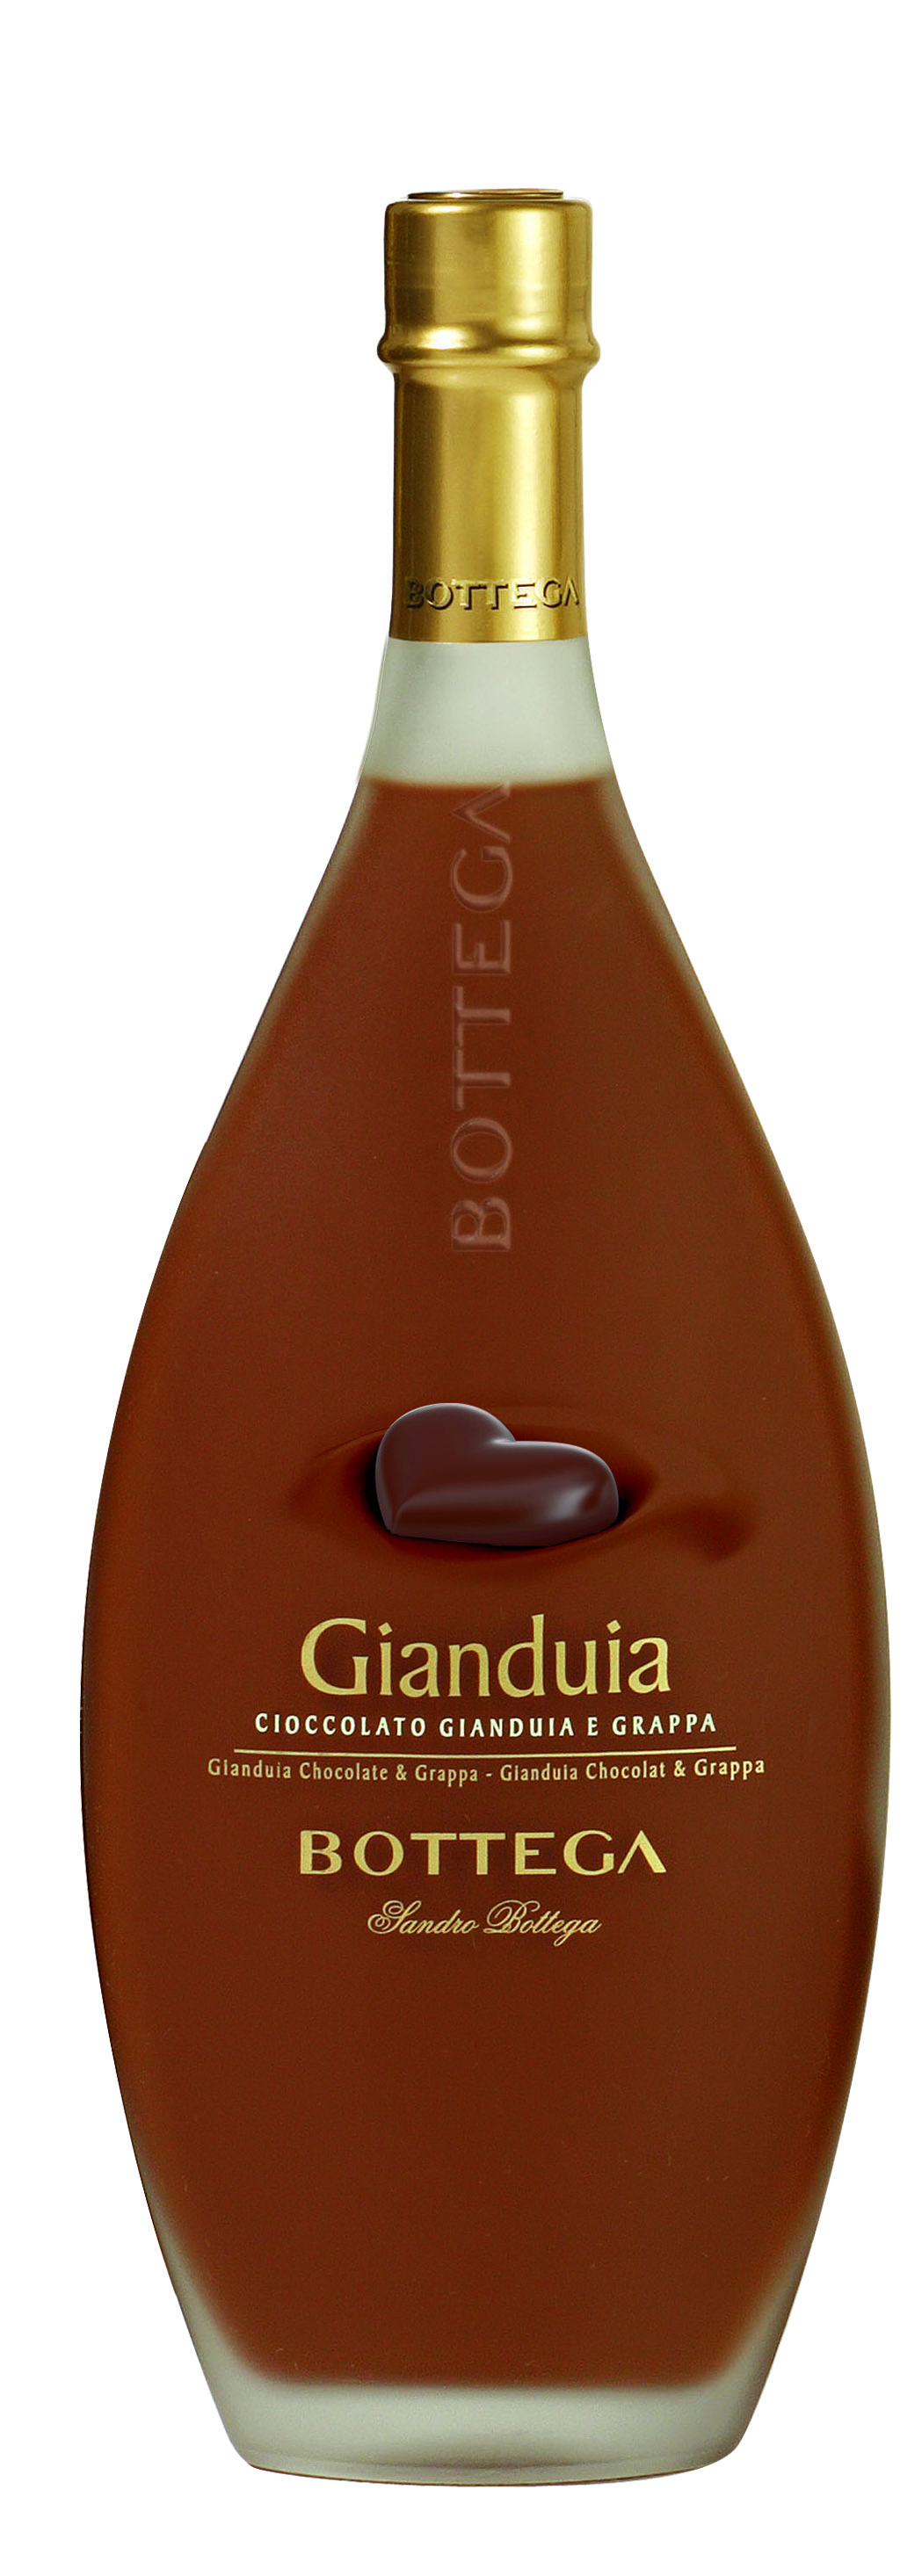 Gianduia Cioccolato e Grappa 0,50 Bottega